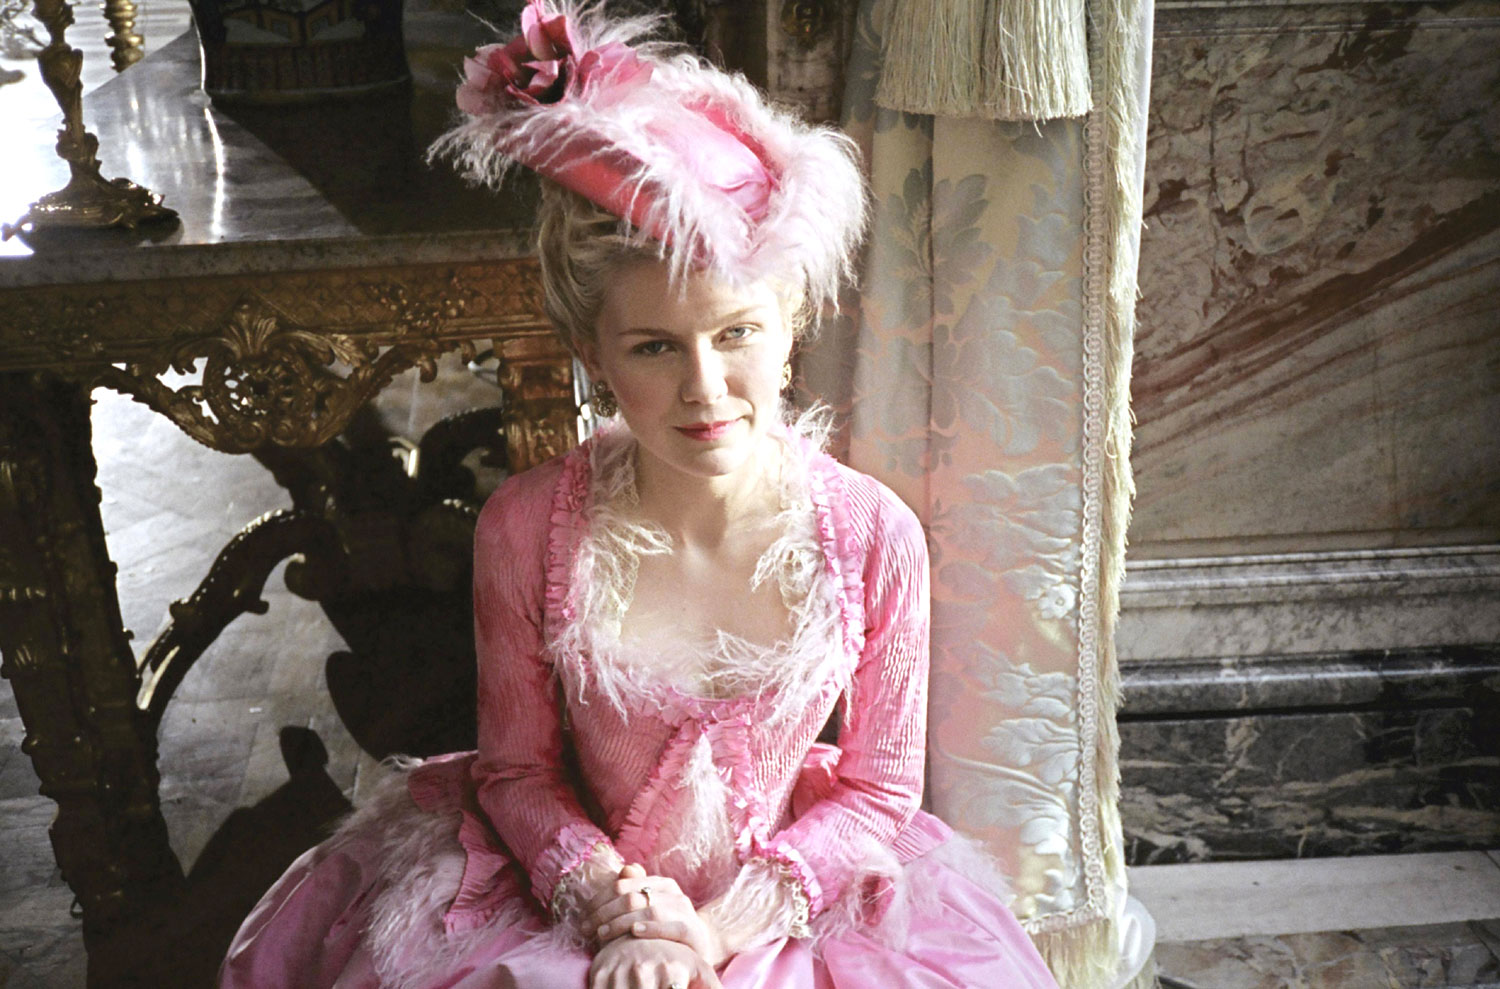 Manolo Blahn  k  Candy Colored Shoes for Sofia Coppola s movie     Amazon com       images about Marie Antoinette on Pinterest   Out of africa  Costume  design and Search